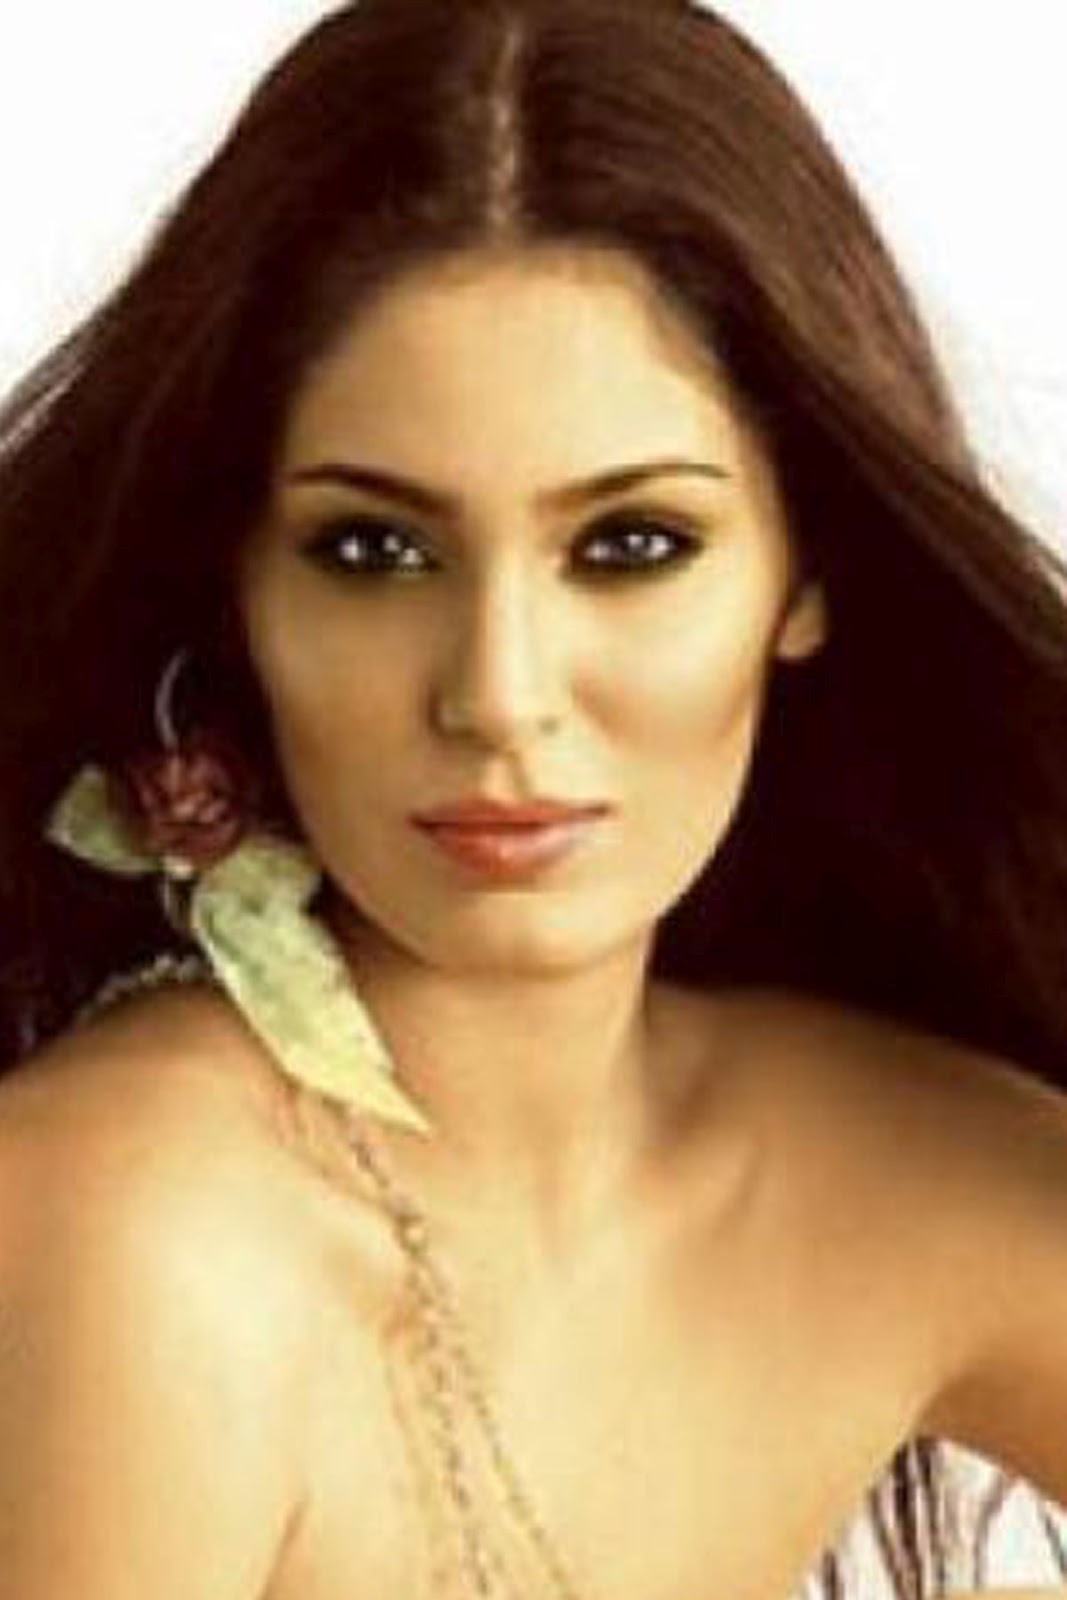 ... celebsview.blogspot.com/2012/07/bollywood-actress-huma-qureshi_16.html